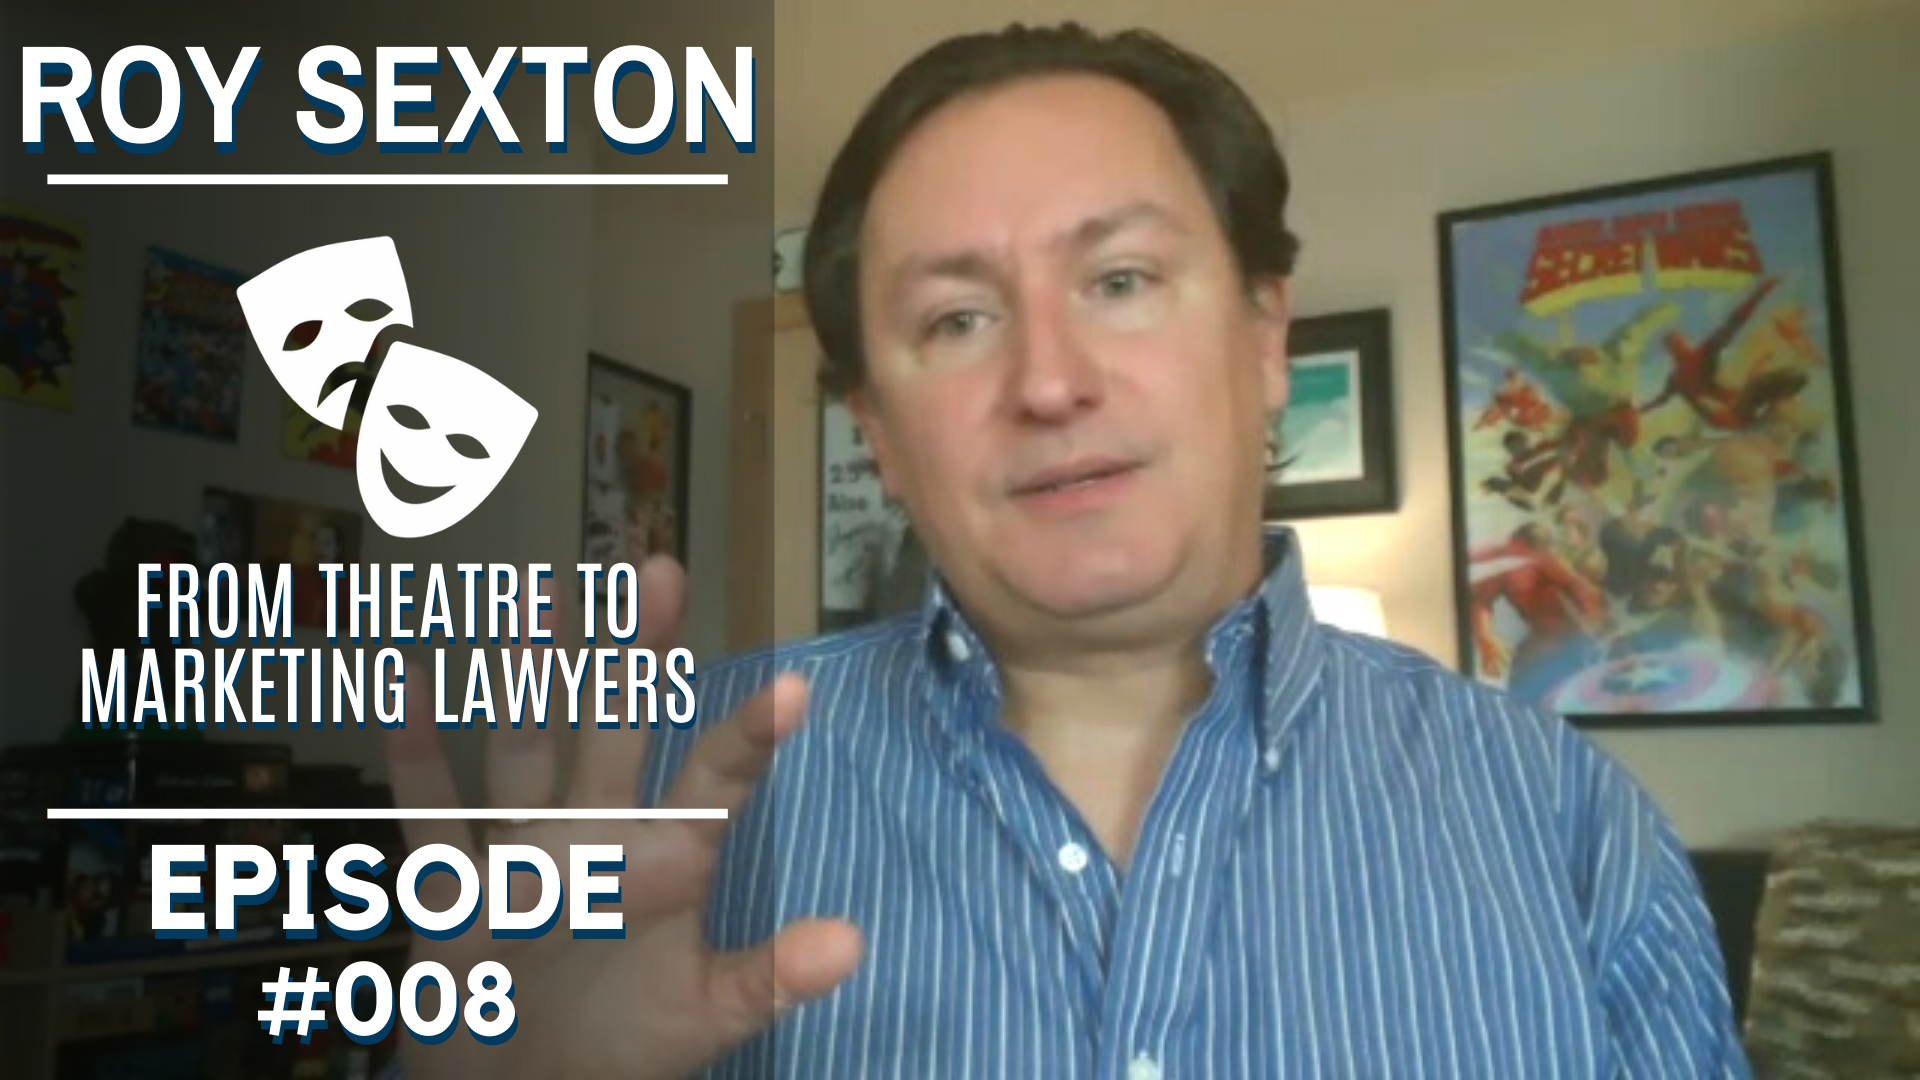 Roy Sexton: From Theatre To Marketing Lawyers (Dealing with Goliath #008)